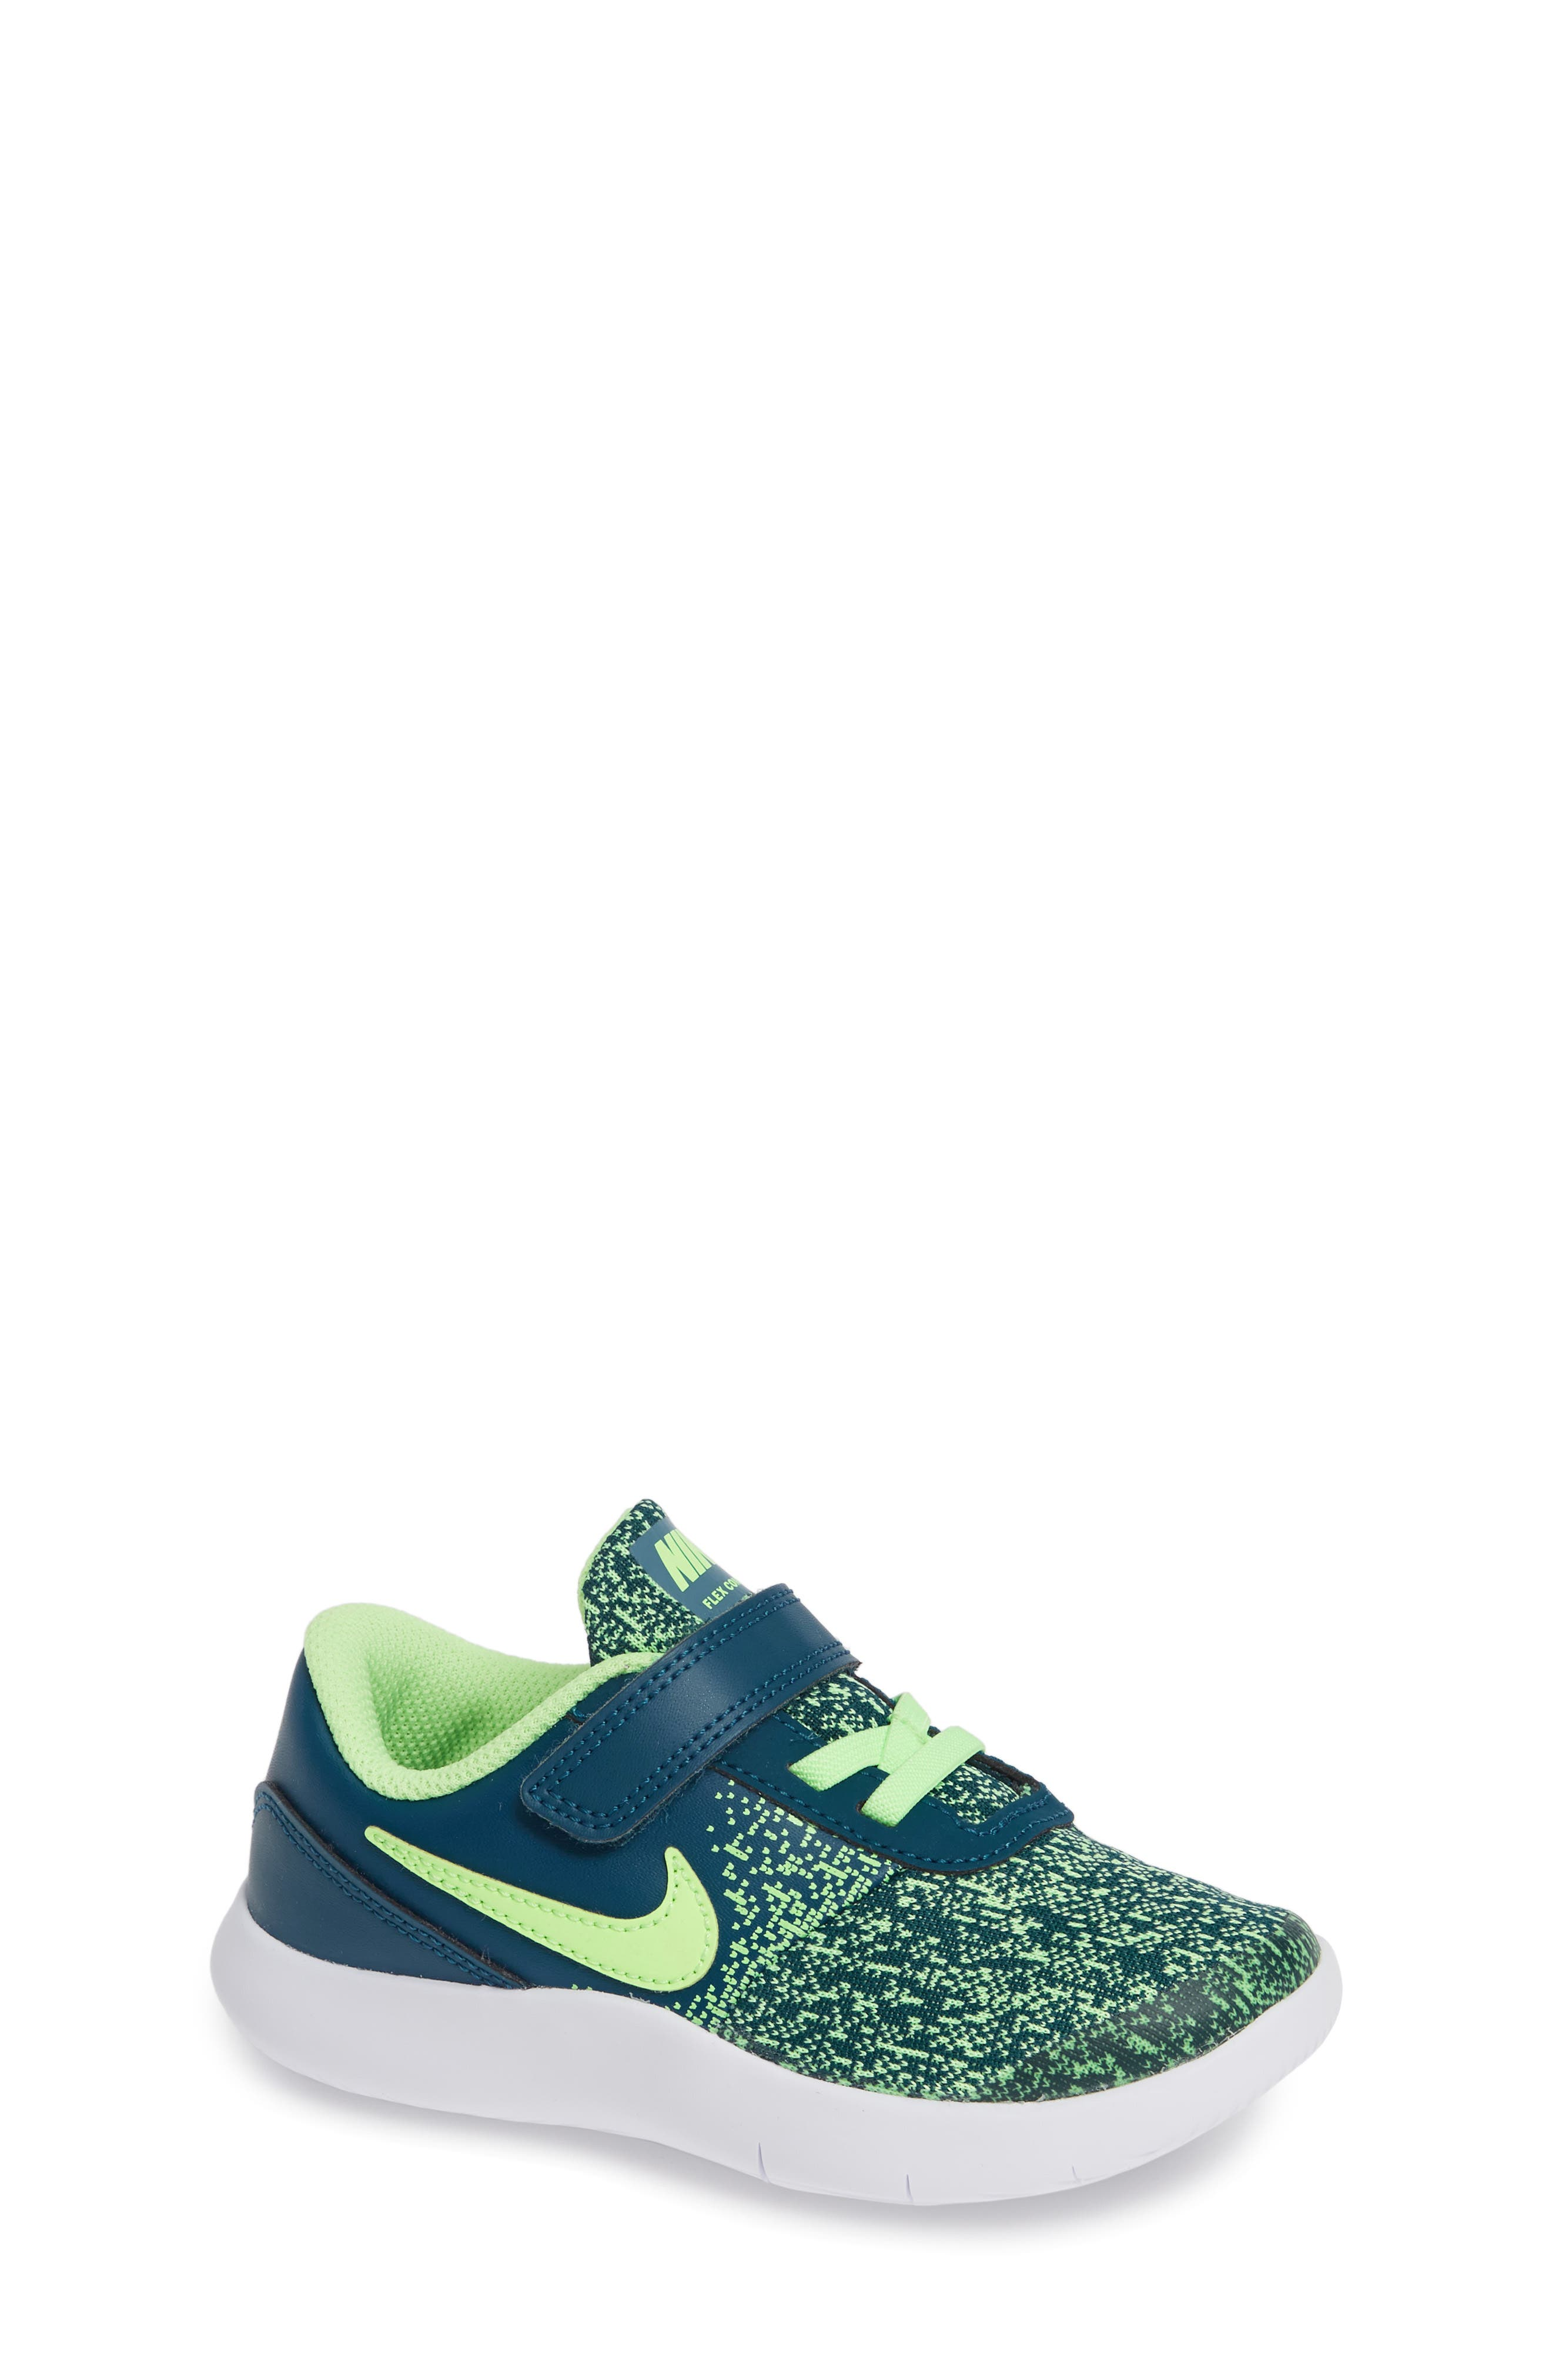 NIKE Flex Contact Running Shoe, Main, color, BLUE FORCE/ LIME BLAST